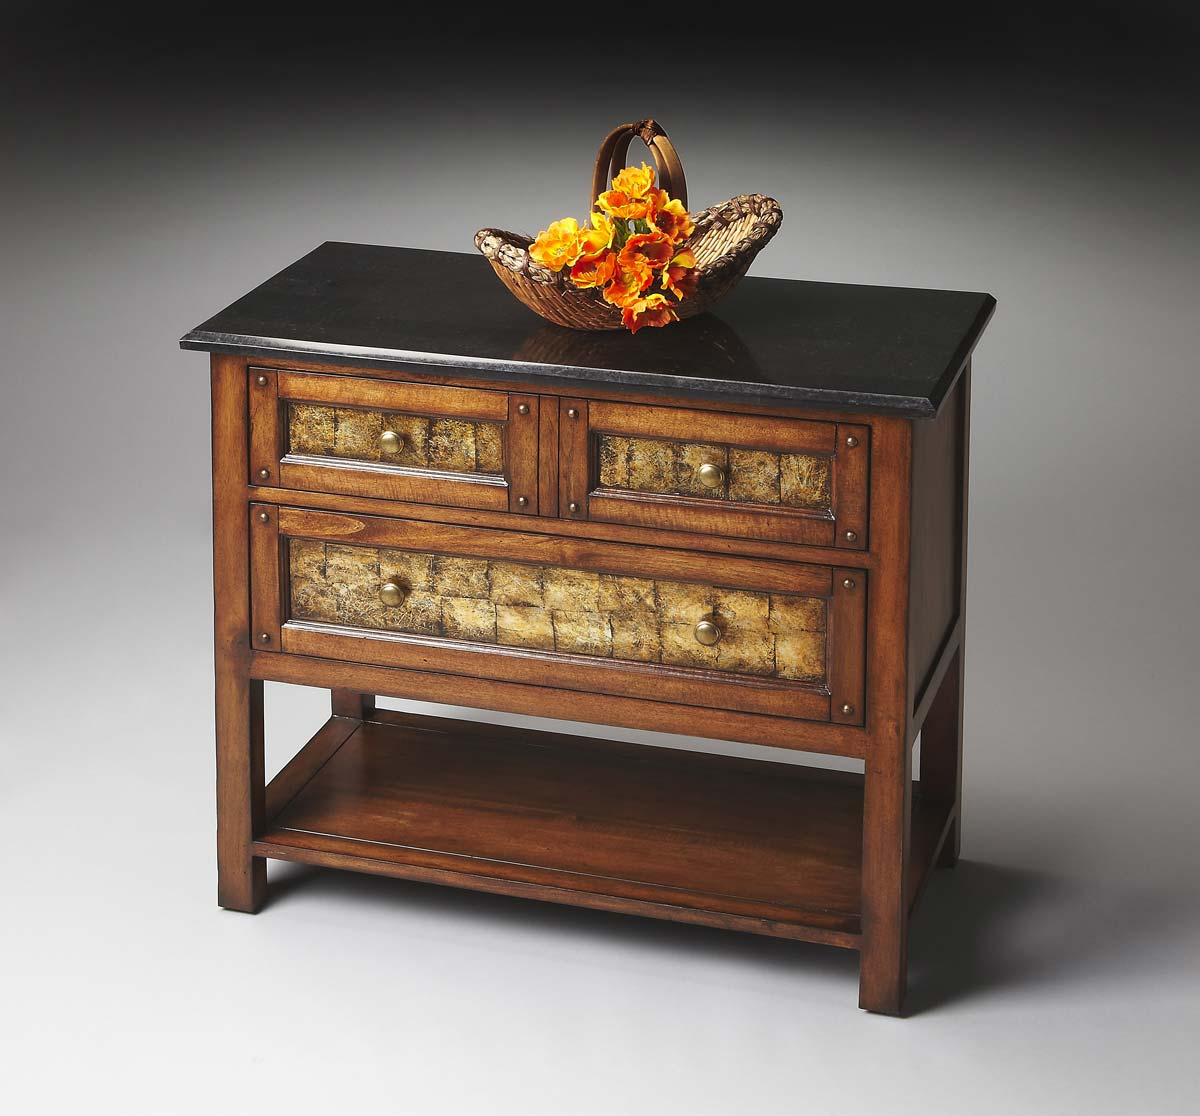 Butler 1131070 Console Chest - Heritage